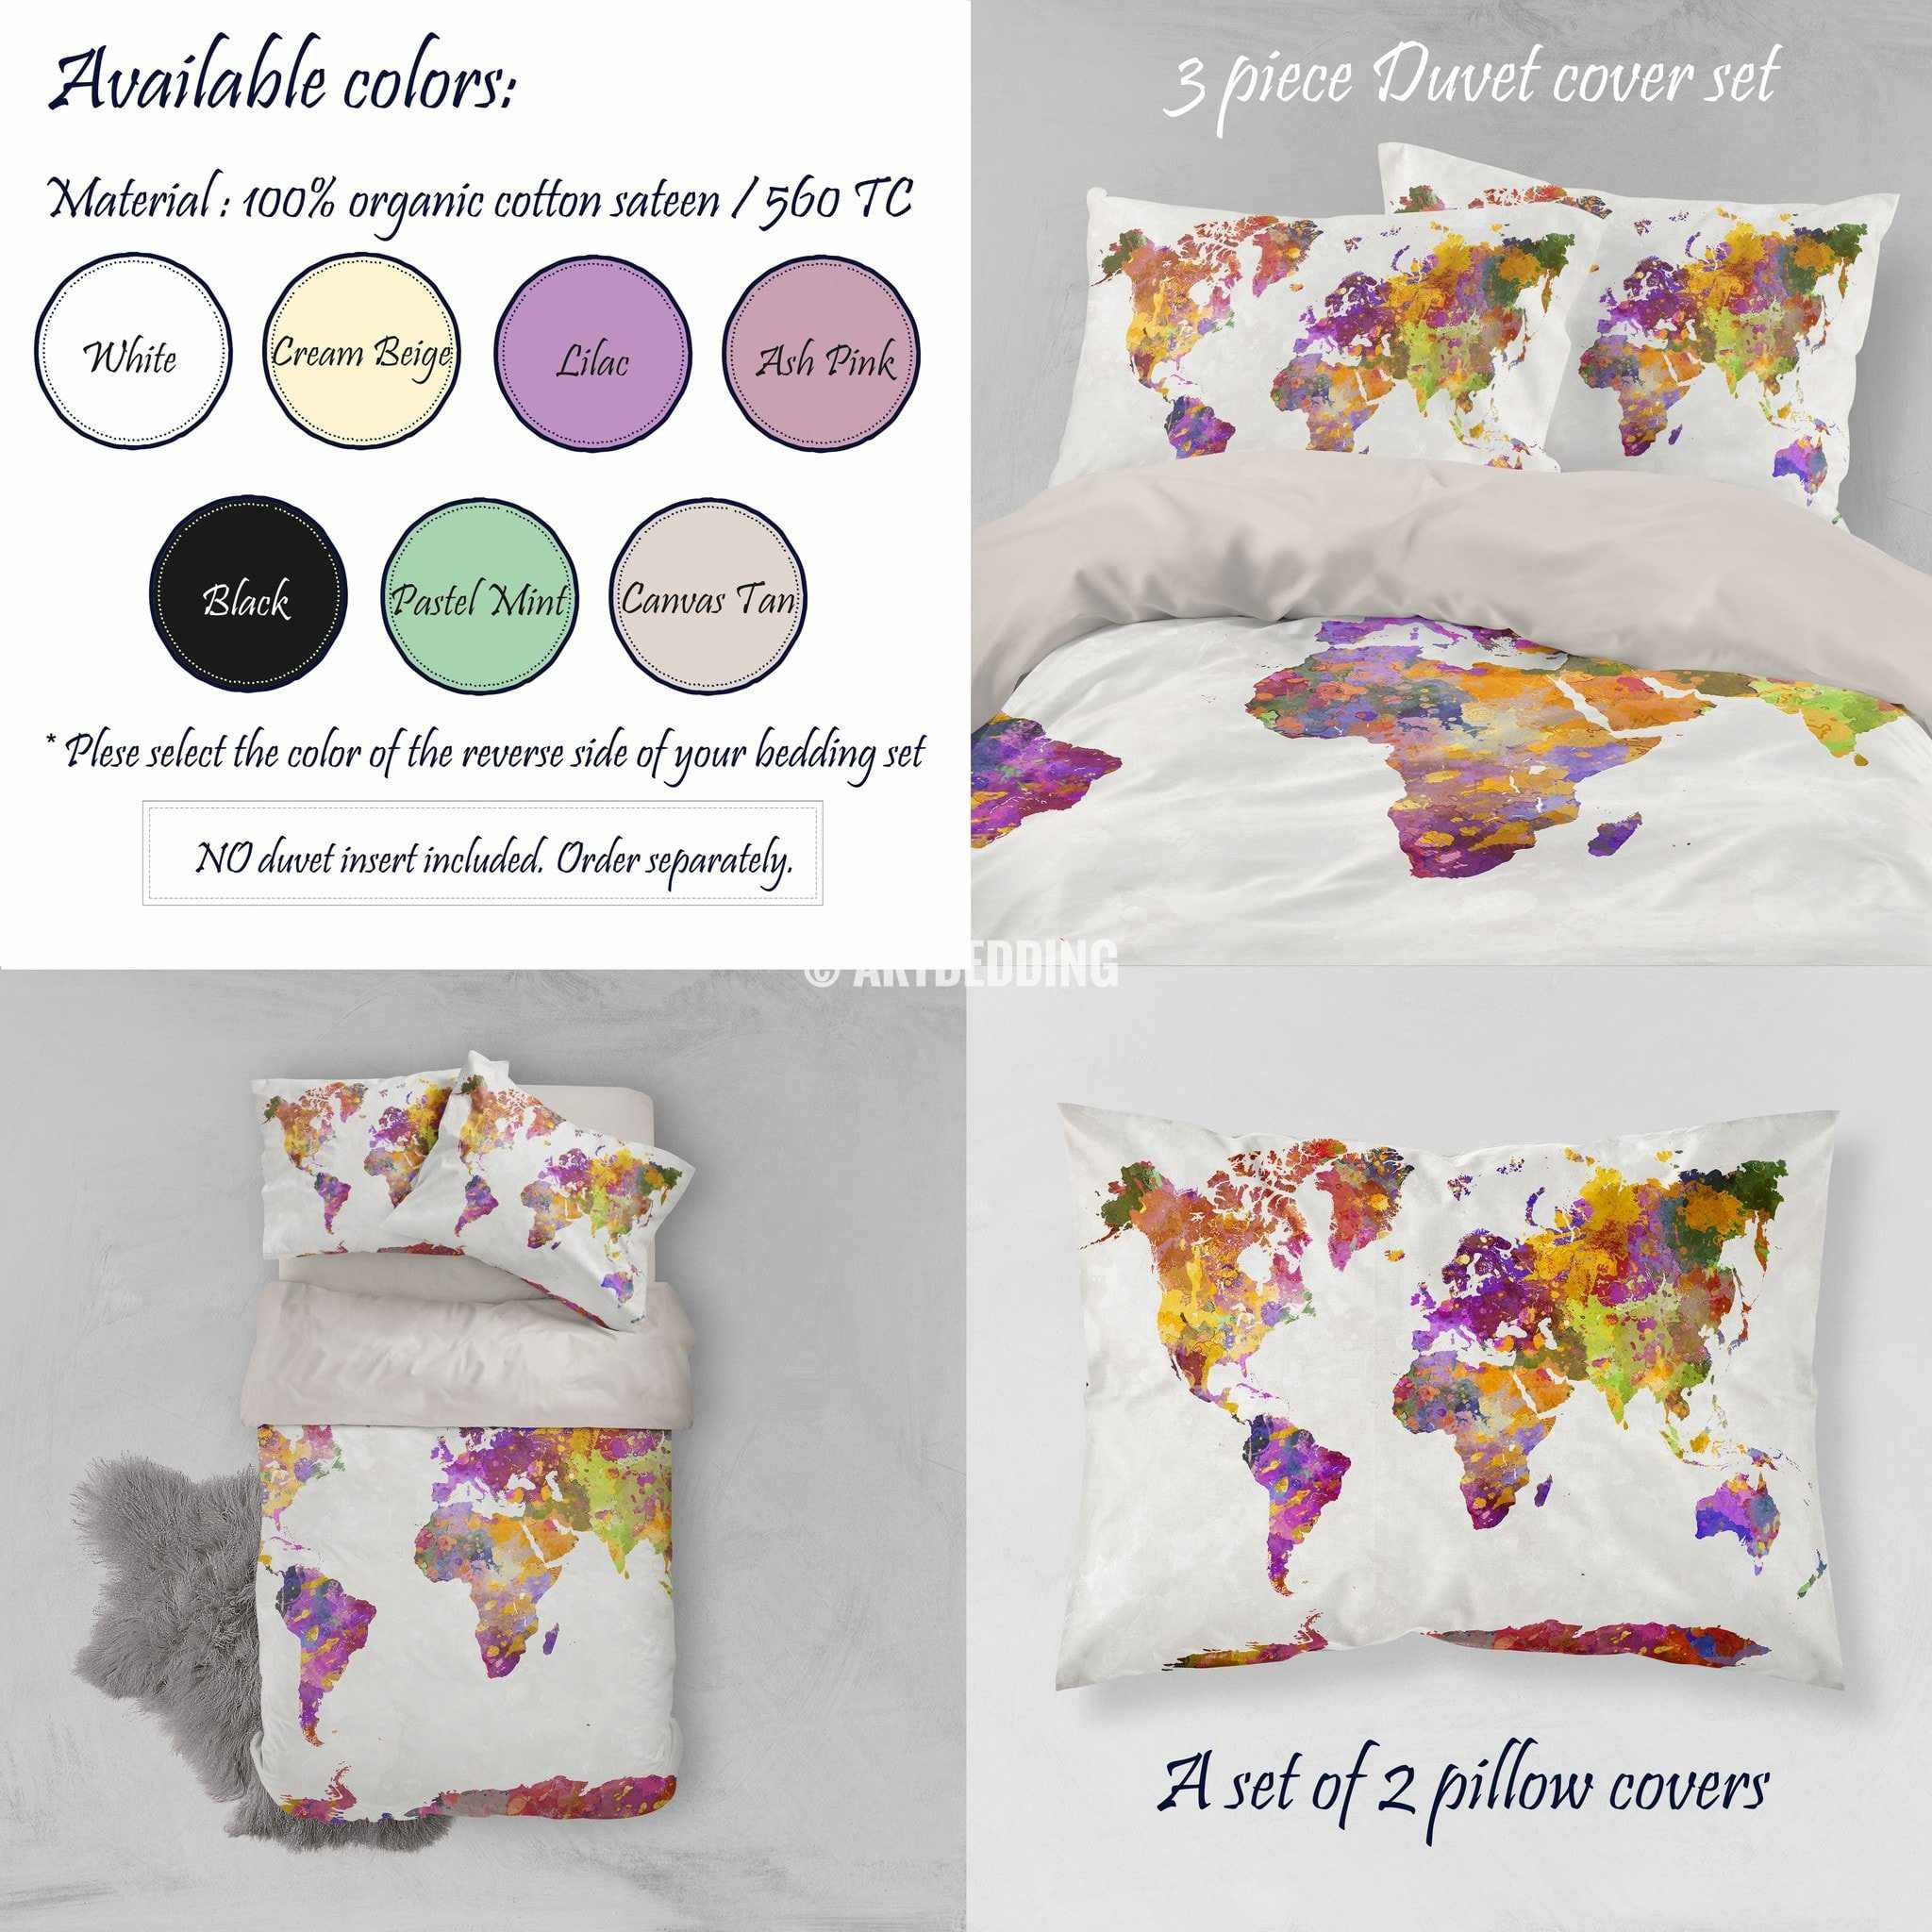 Watercolor world map bedding watercolor art print duvet cover set watercolor world map bedding watercolor art print duvet cover set grunge splashes duvet cover gumiabroncs Gallery